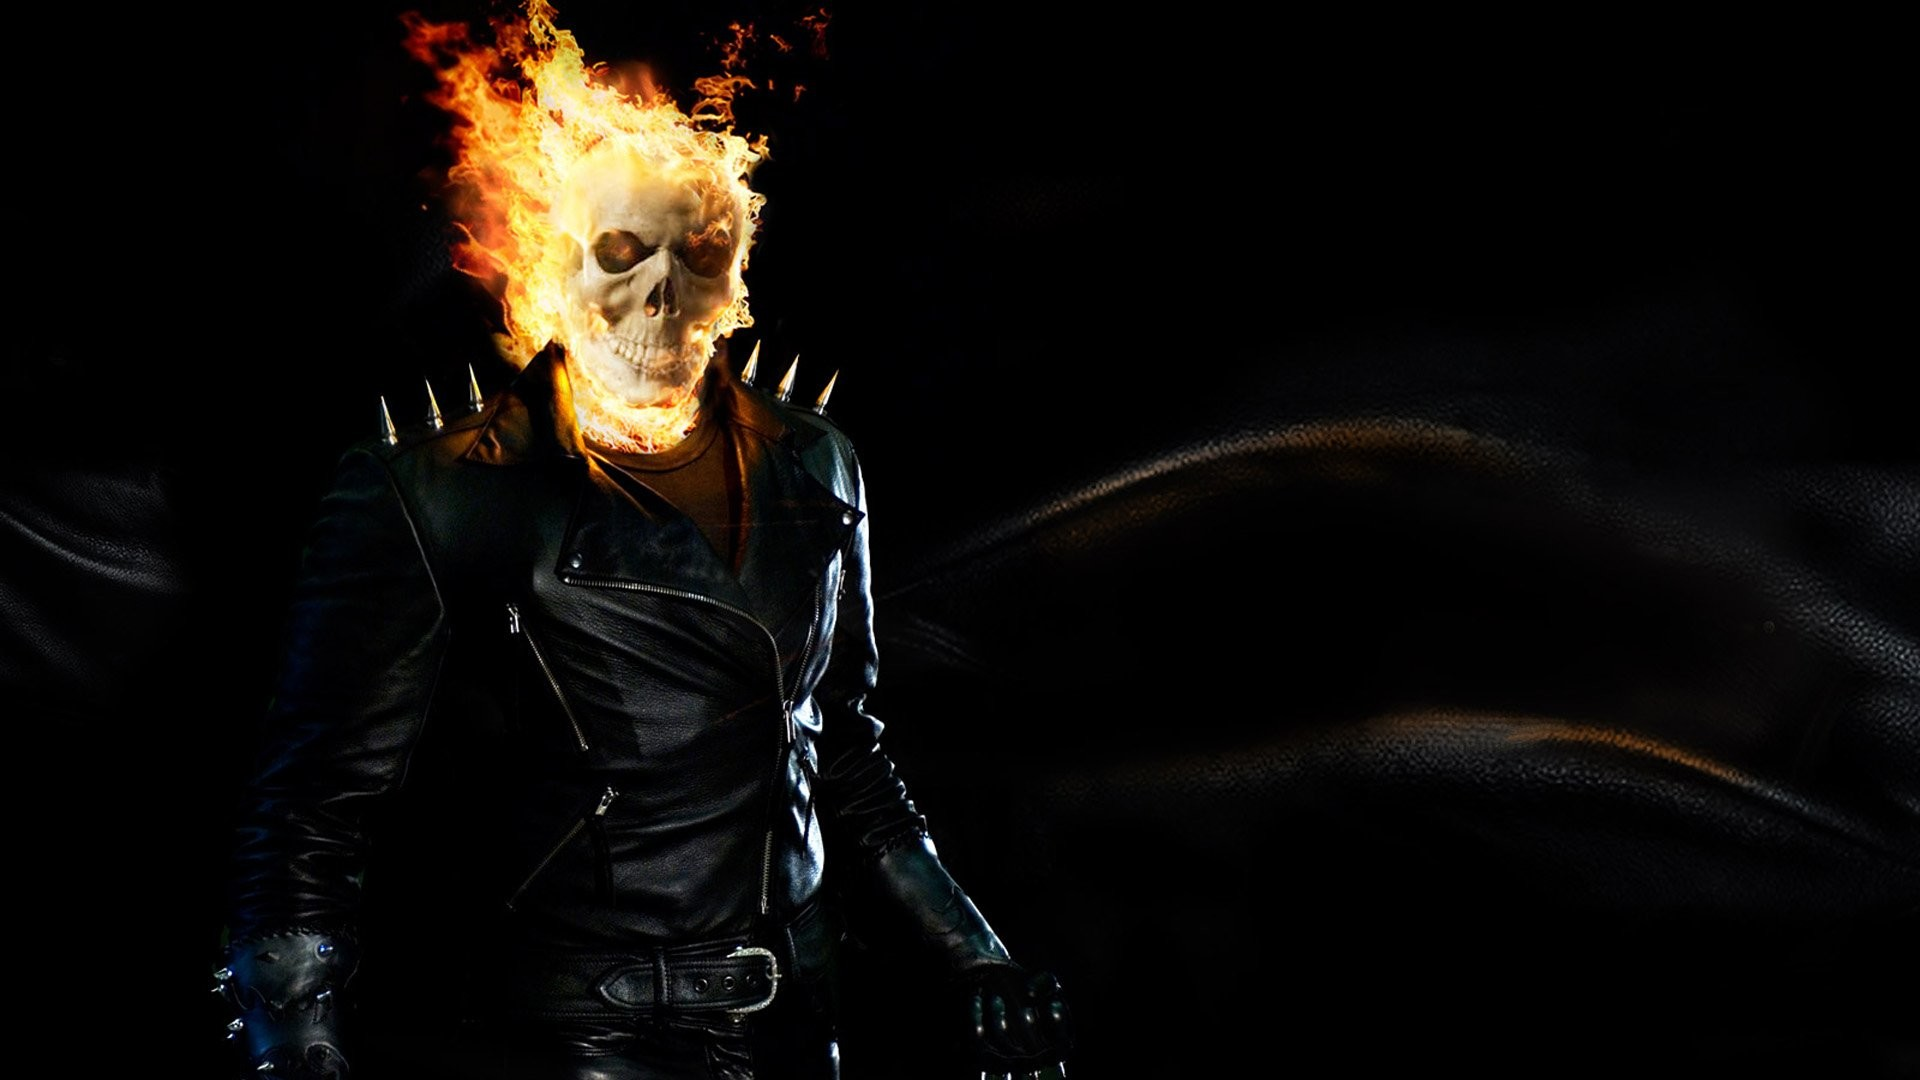 Ghost rider wallpapers wallpapertag - Ghost wallpapers for desktop hd ...